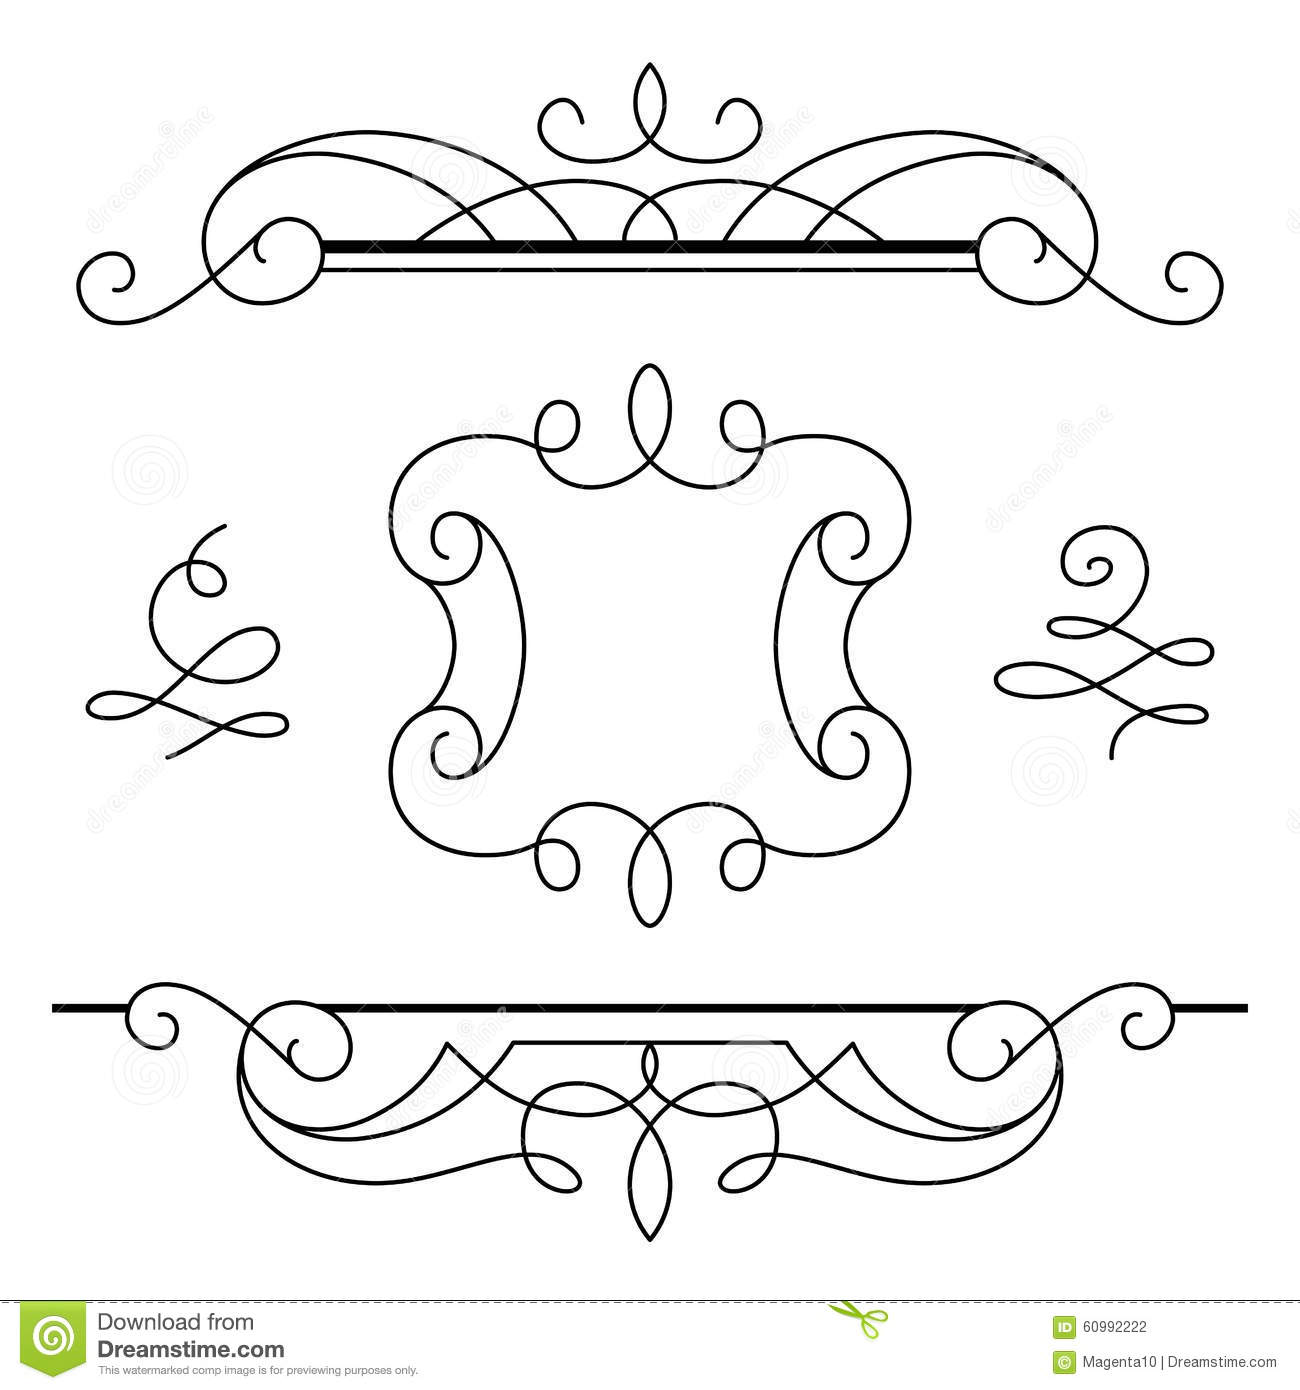 scroll outline template - scroll elements set of vintage calligraphic vignettes